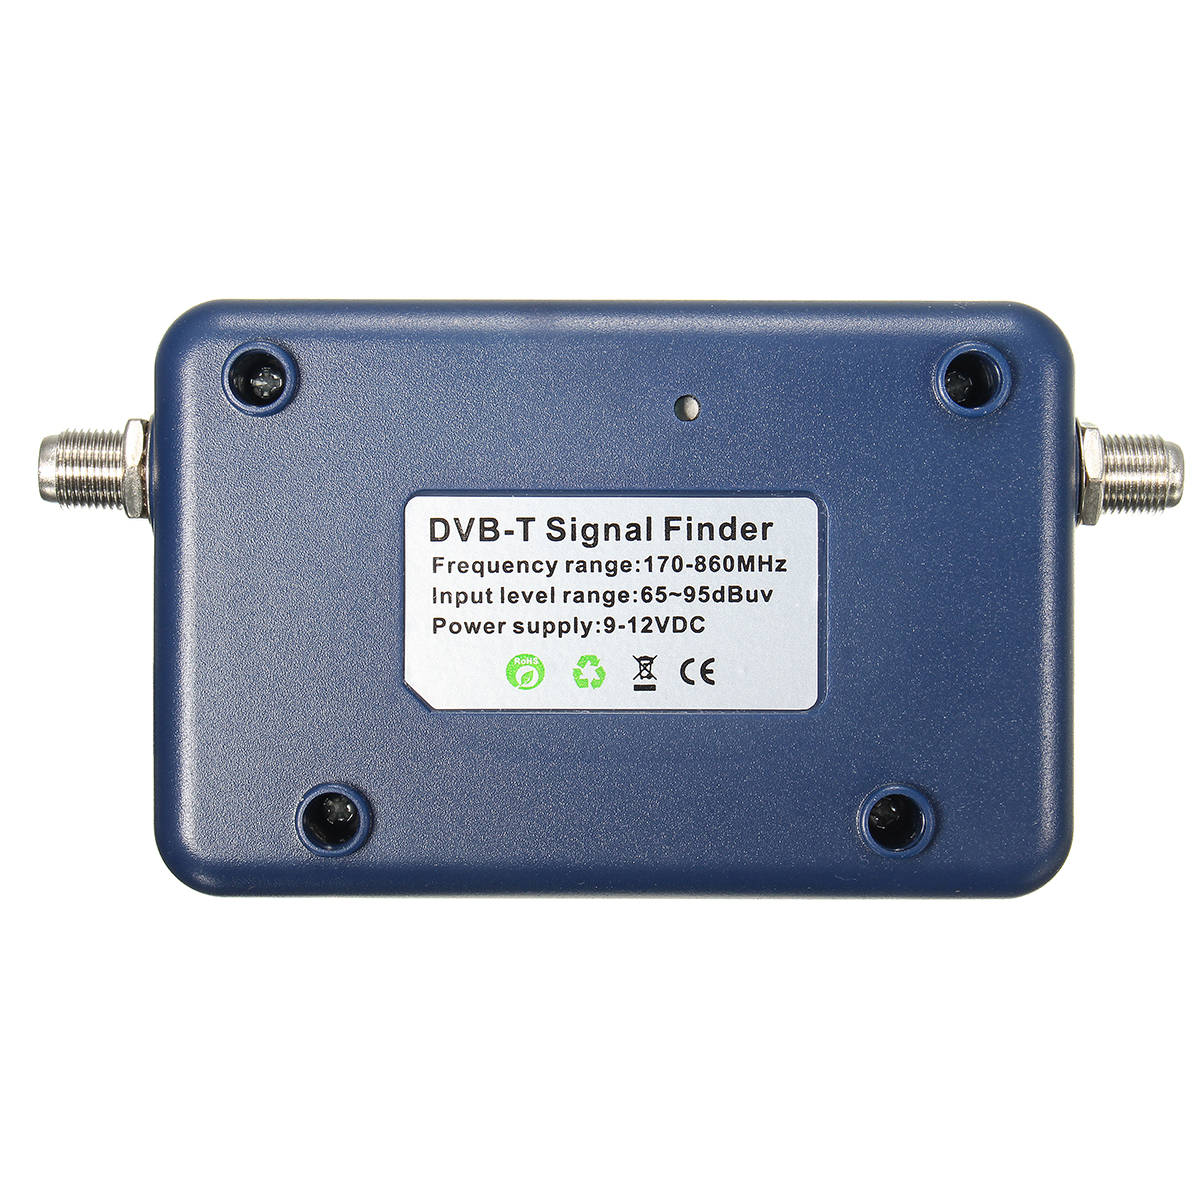 SF95DT DVB-T Finder Digital Aerial Terrestrial TV Antenna Signal Strength Meter Compass